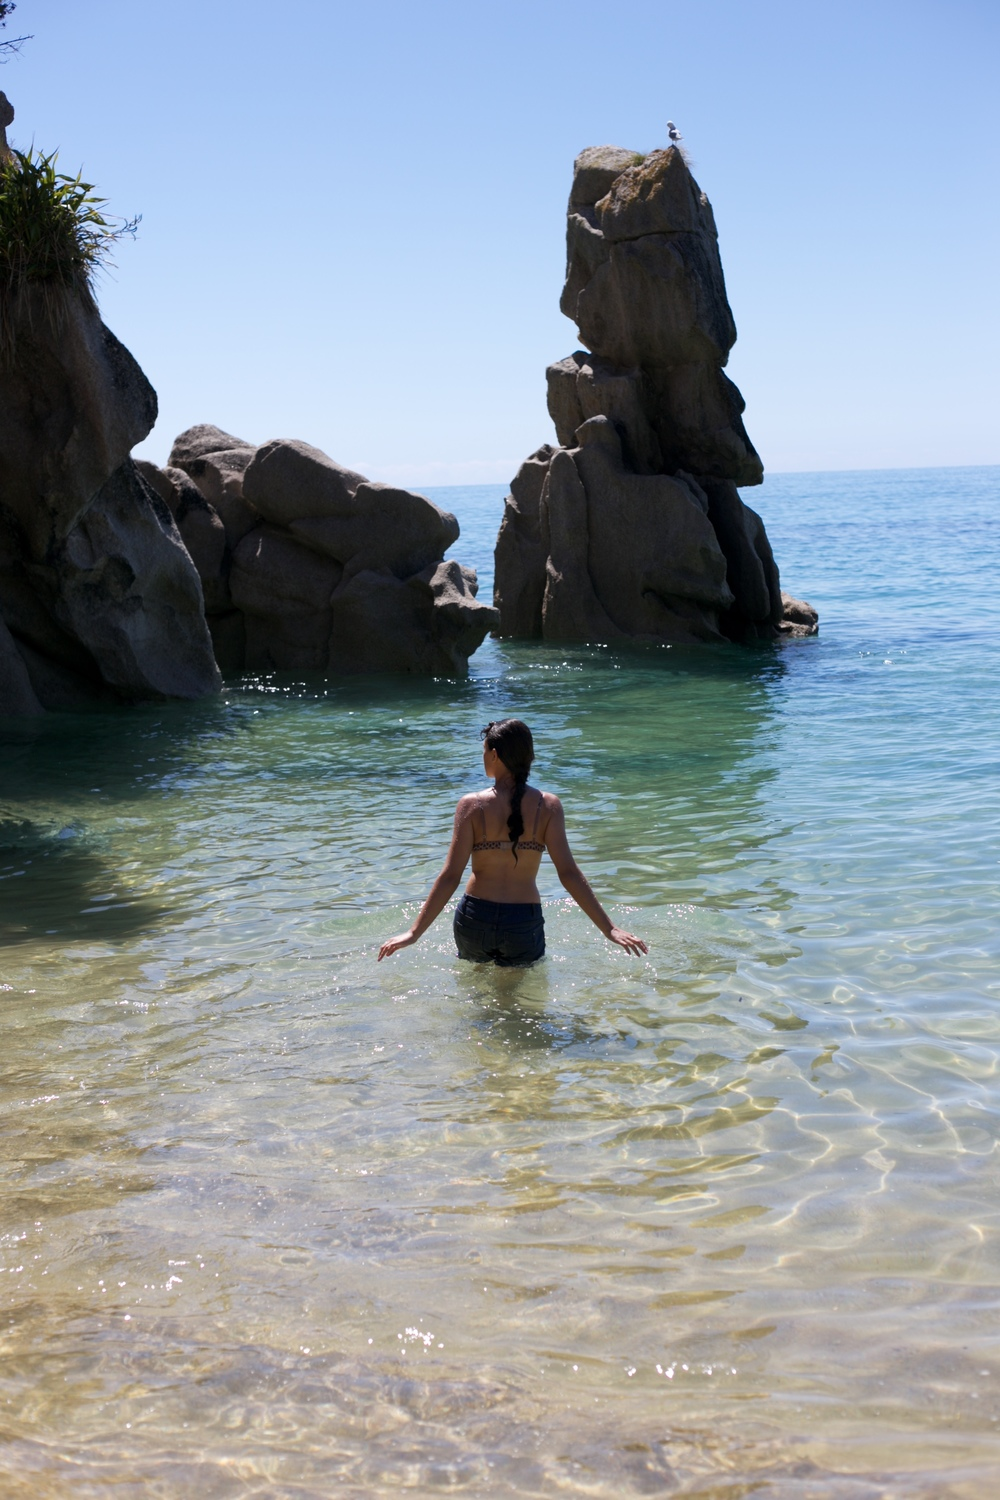 Swimming in the Able Tasman.